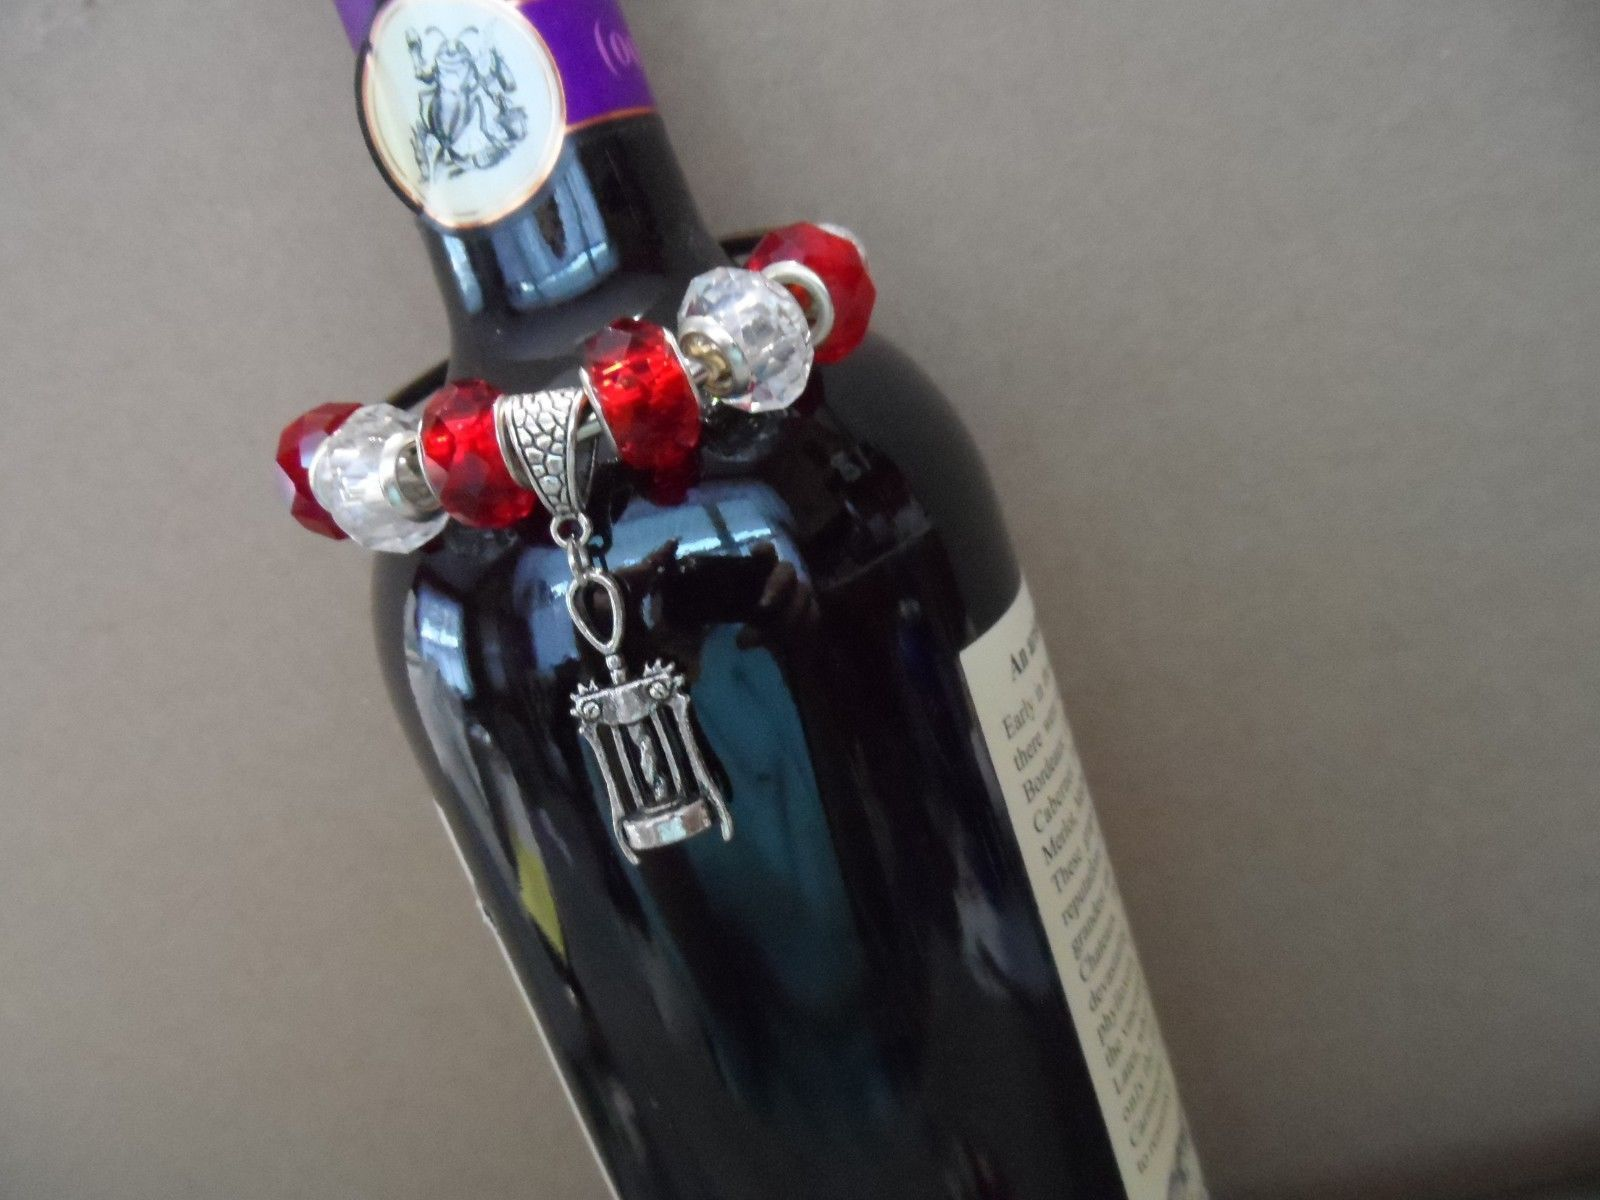 Metal wine bottle decorative necklace with murano glass beads - choice lot 2